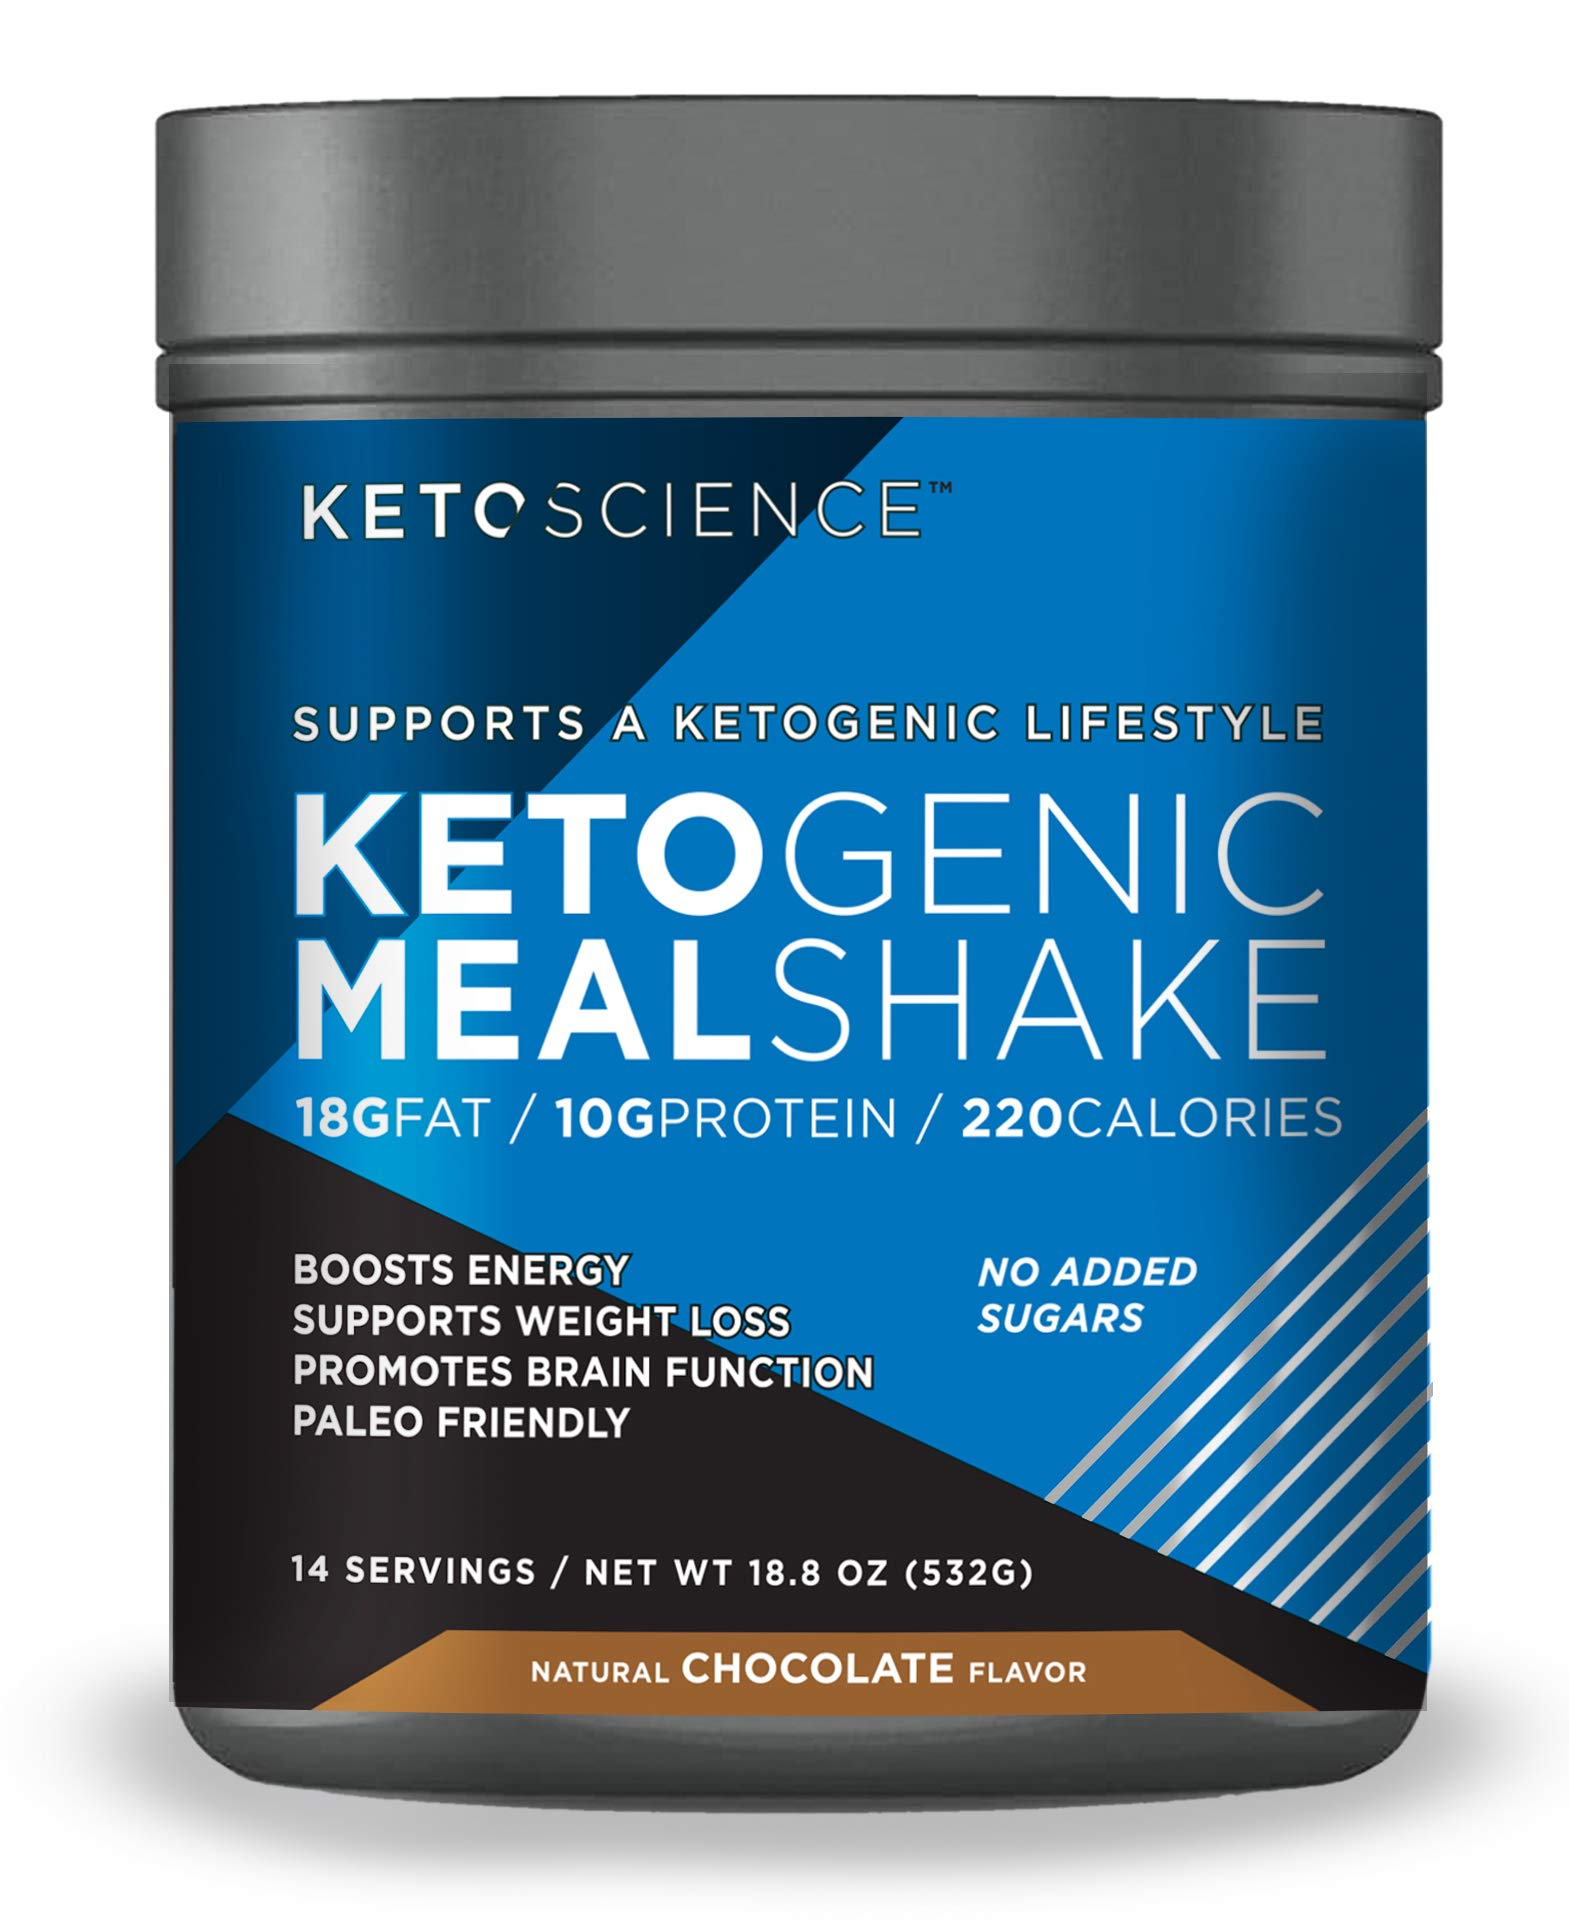 Keto Science Ketogenic Meal Shake Chocolate Dietary Supplement, Rich in MCTs and Protein, Keto and Paleo Friendly, Weight Loss, 19 oz. (14 servings) by Keto Science